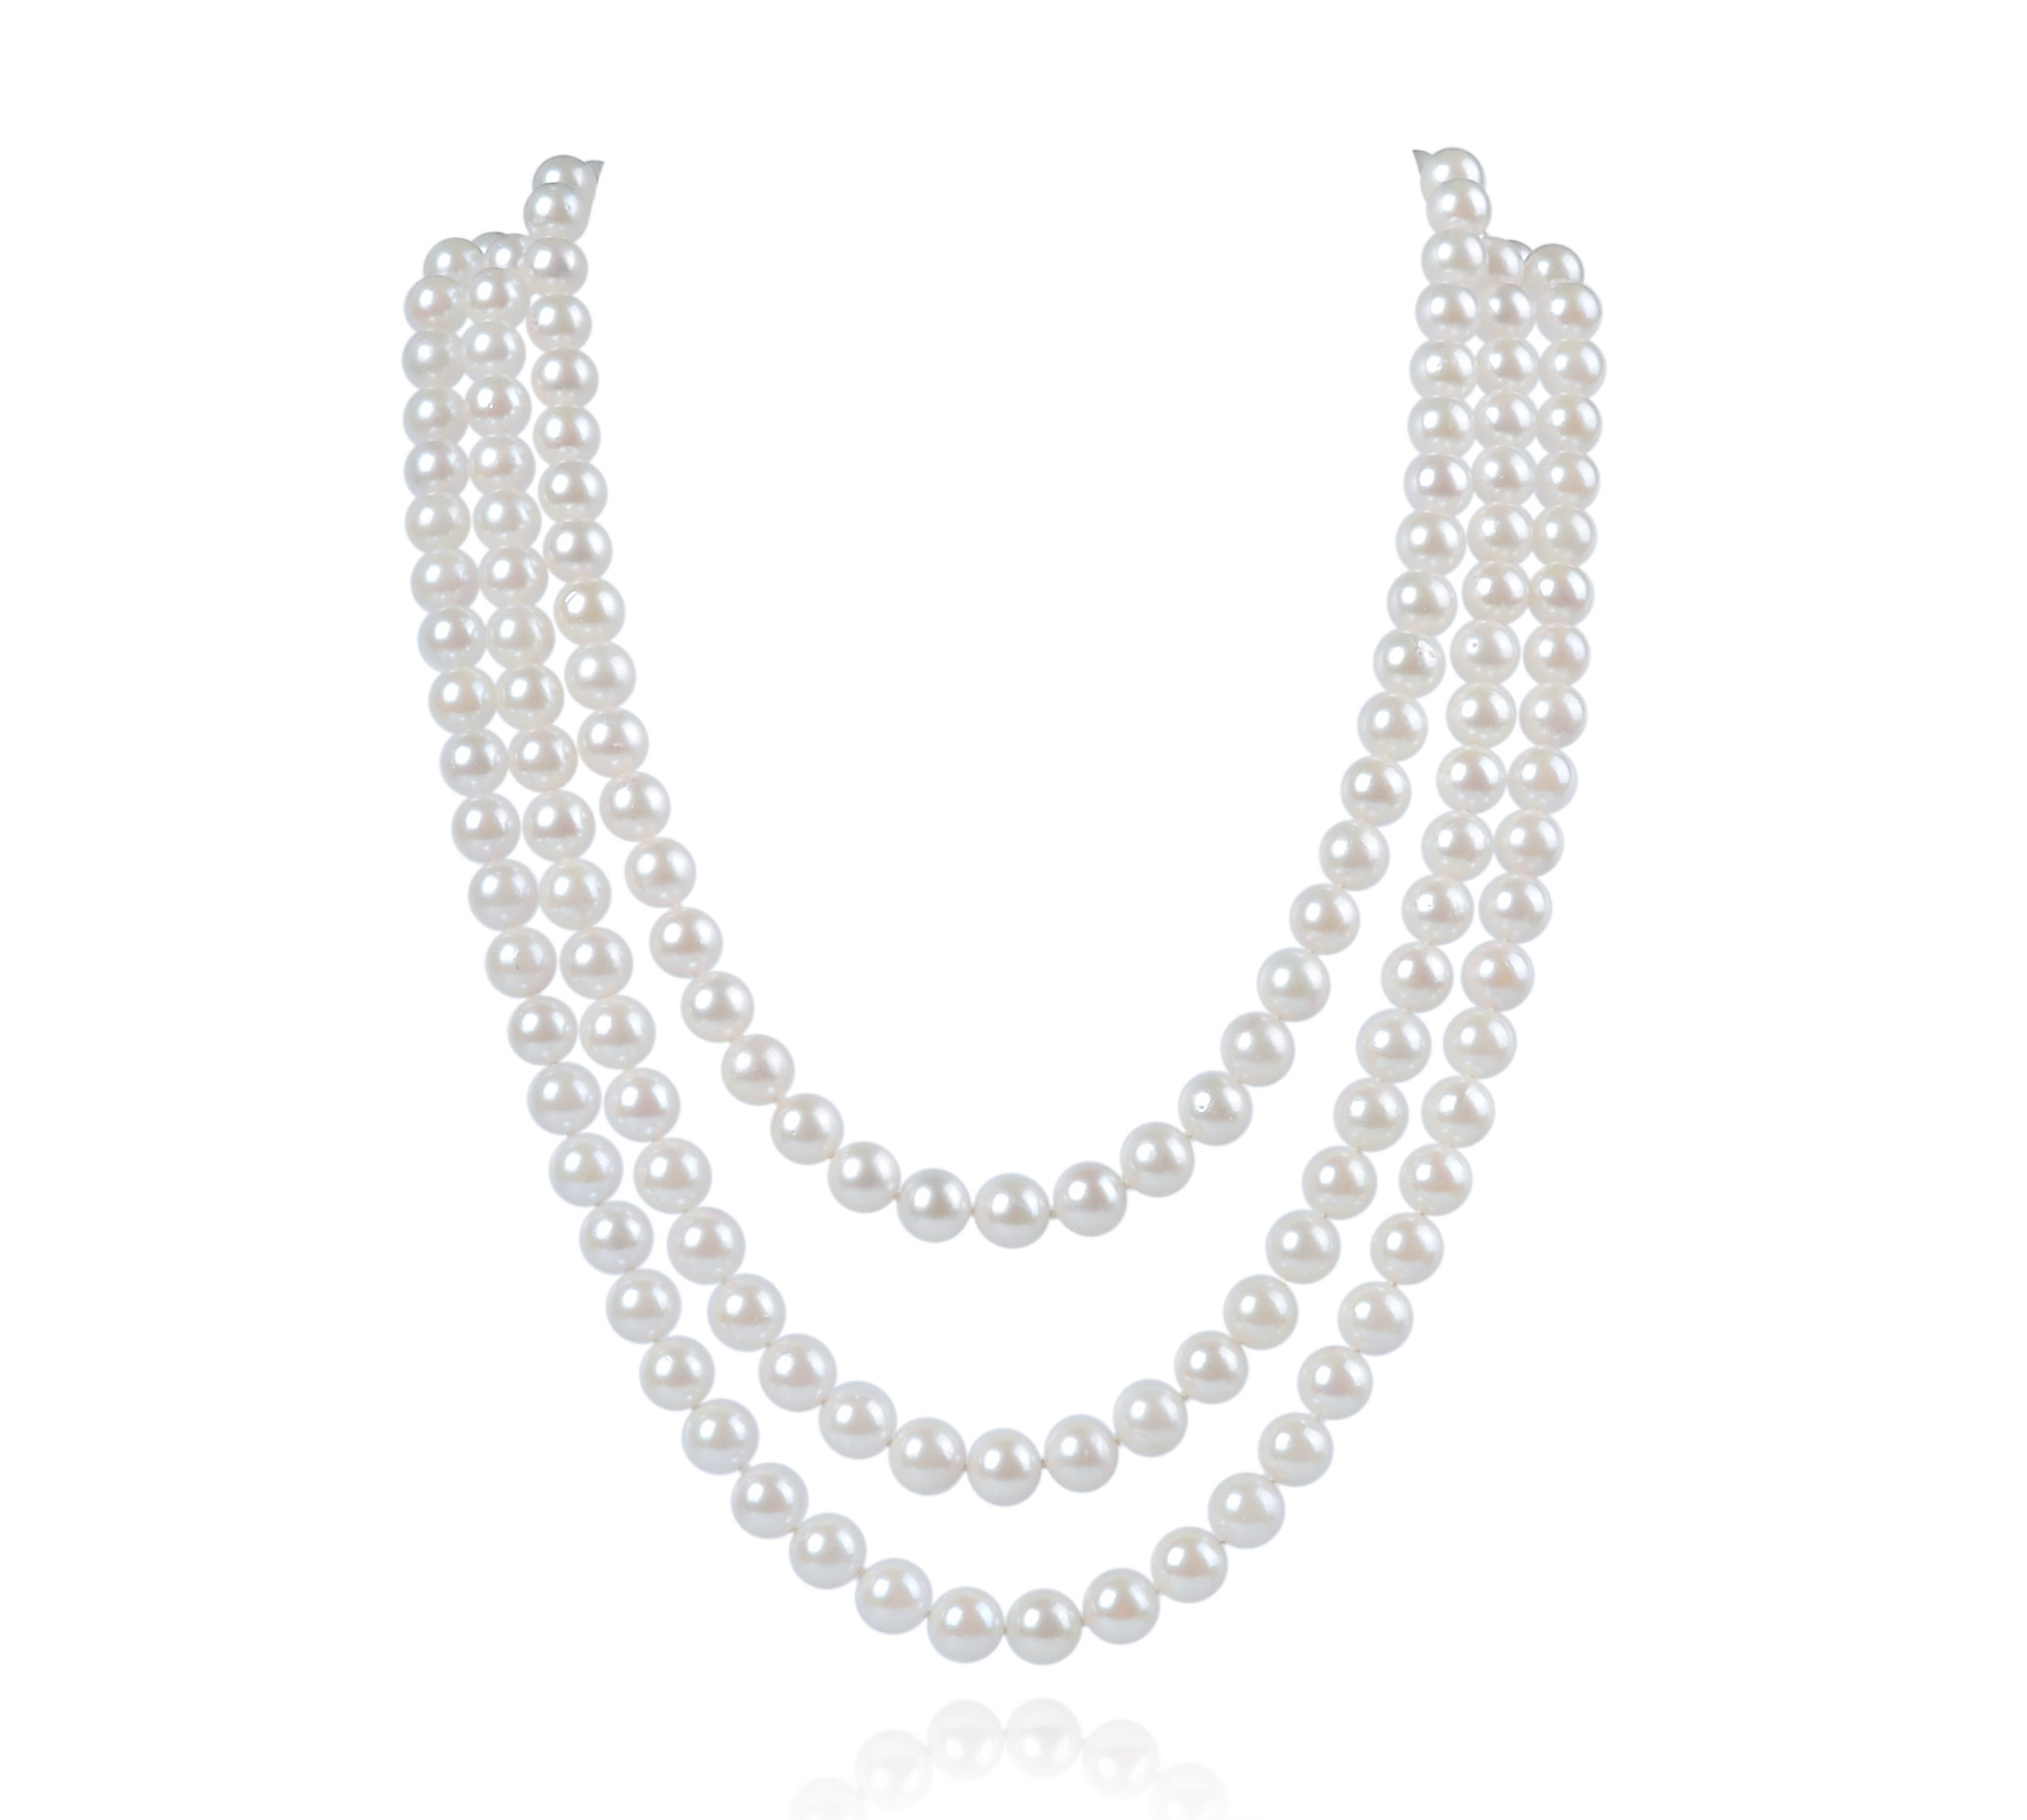 7.5mm Three Strand AAA- White Cultured Akoya Pearl Necklace -nk123